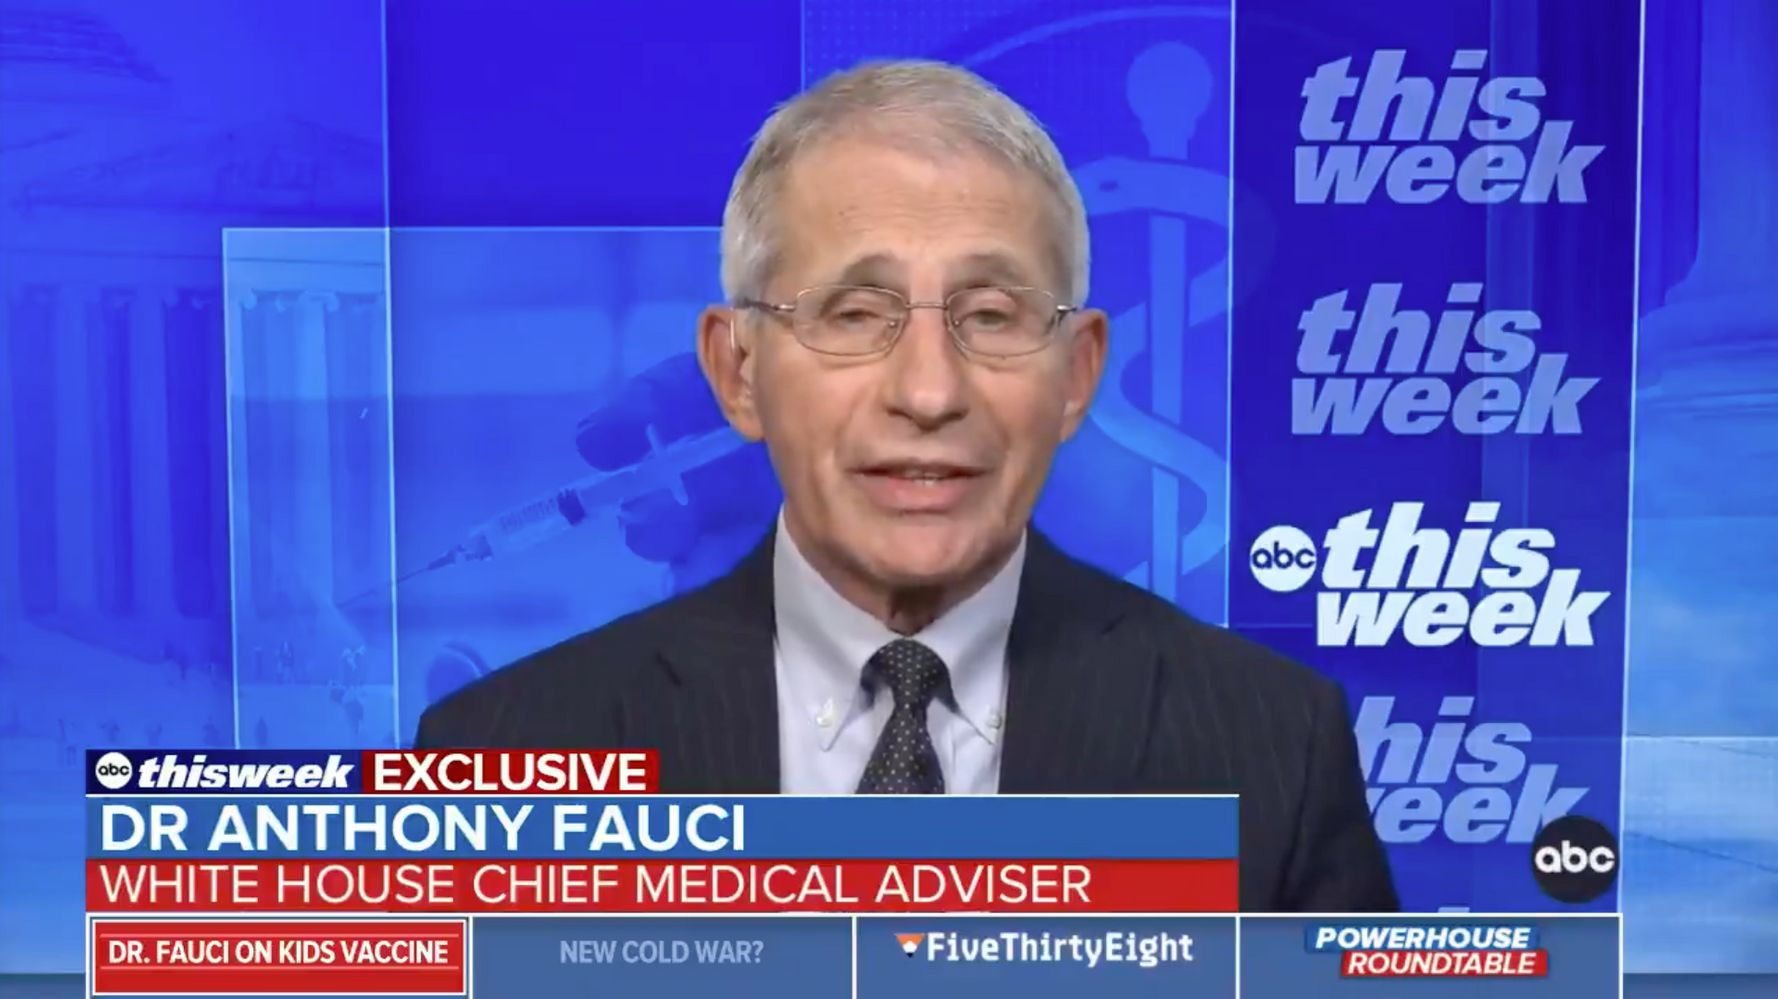 Dr. Anthony Fauci Says 5- To 11-Year-Olds Could Get Pfizer COVID-19 Shot By Early November